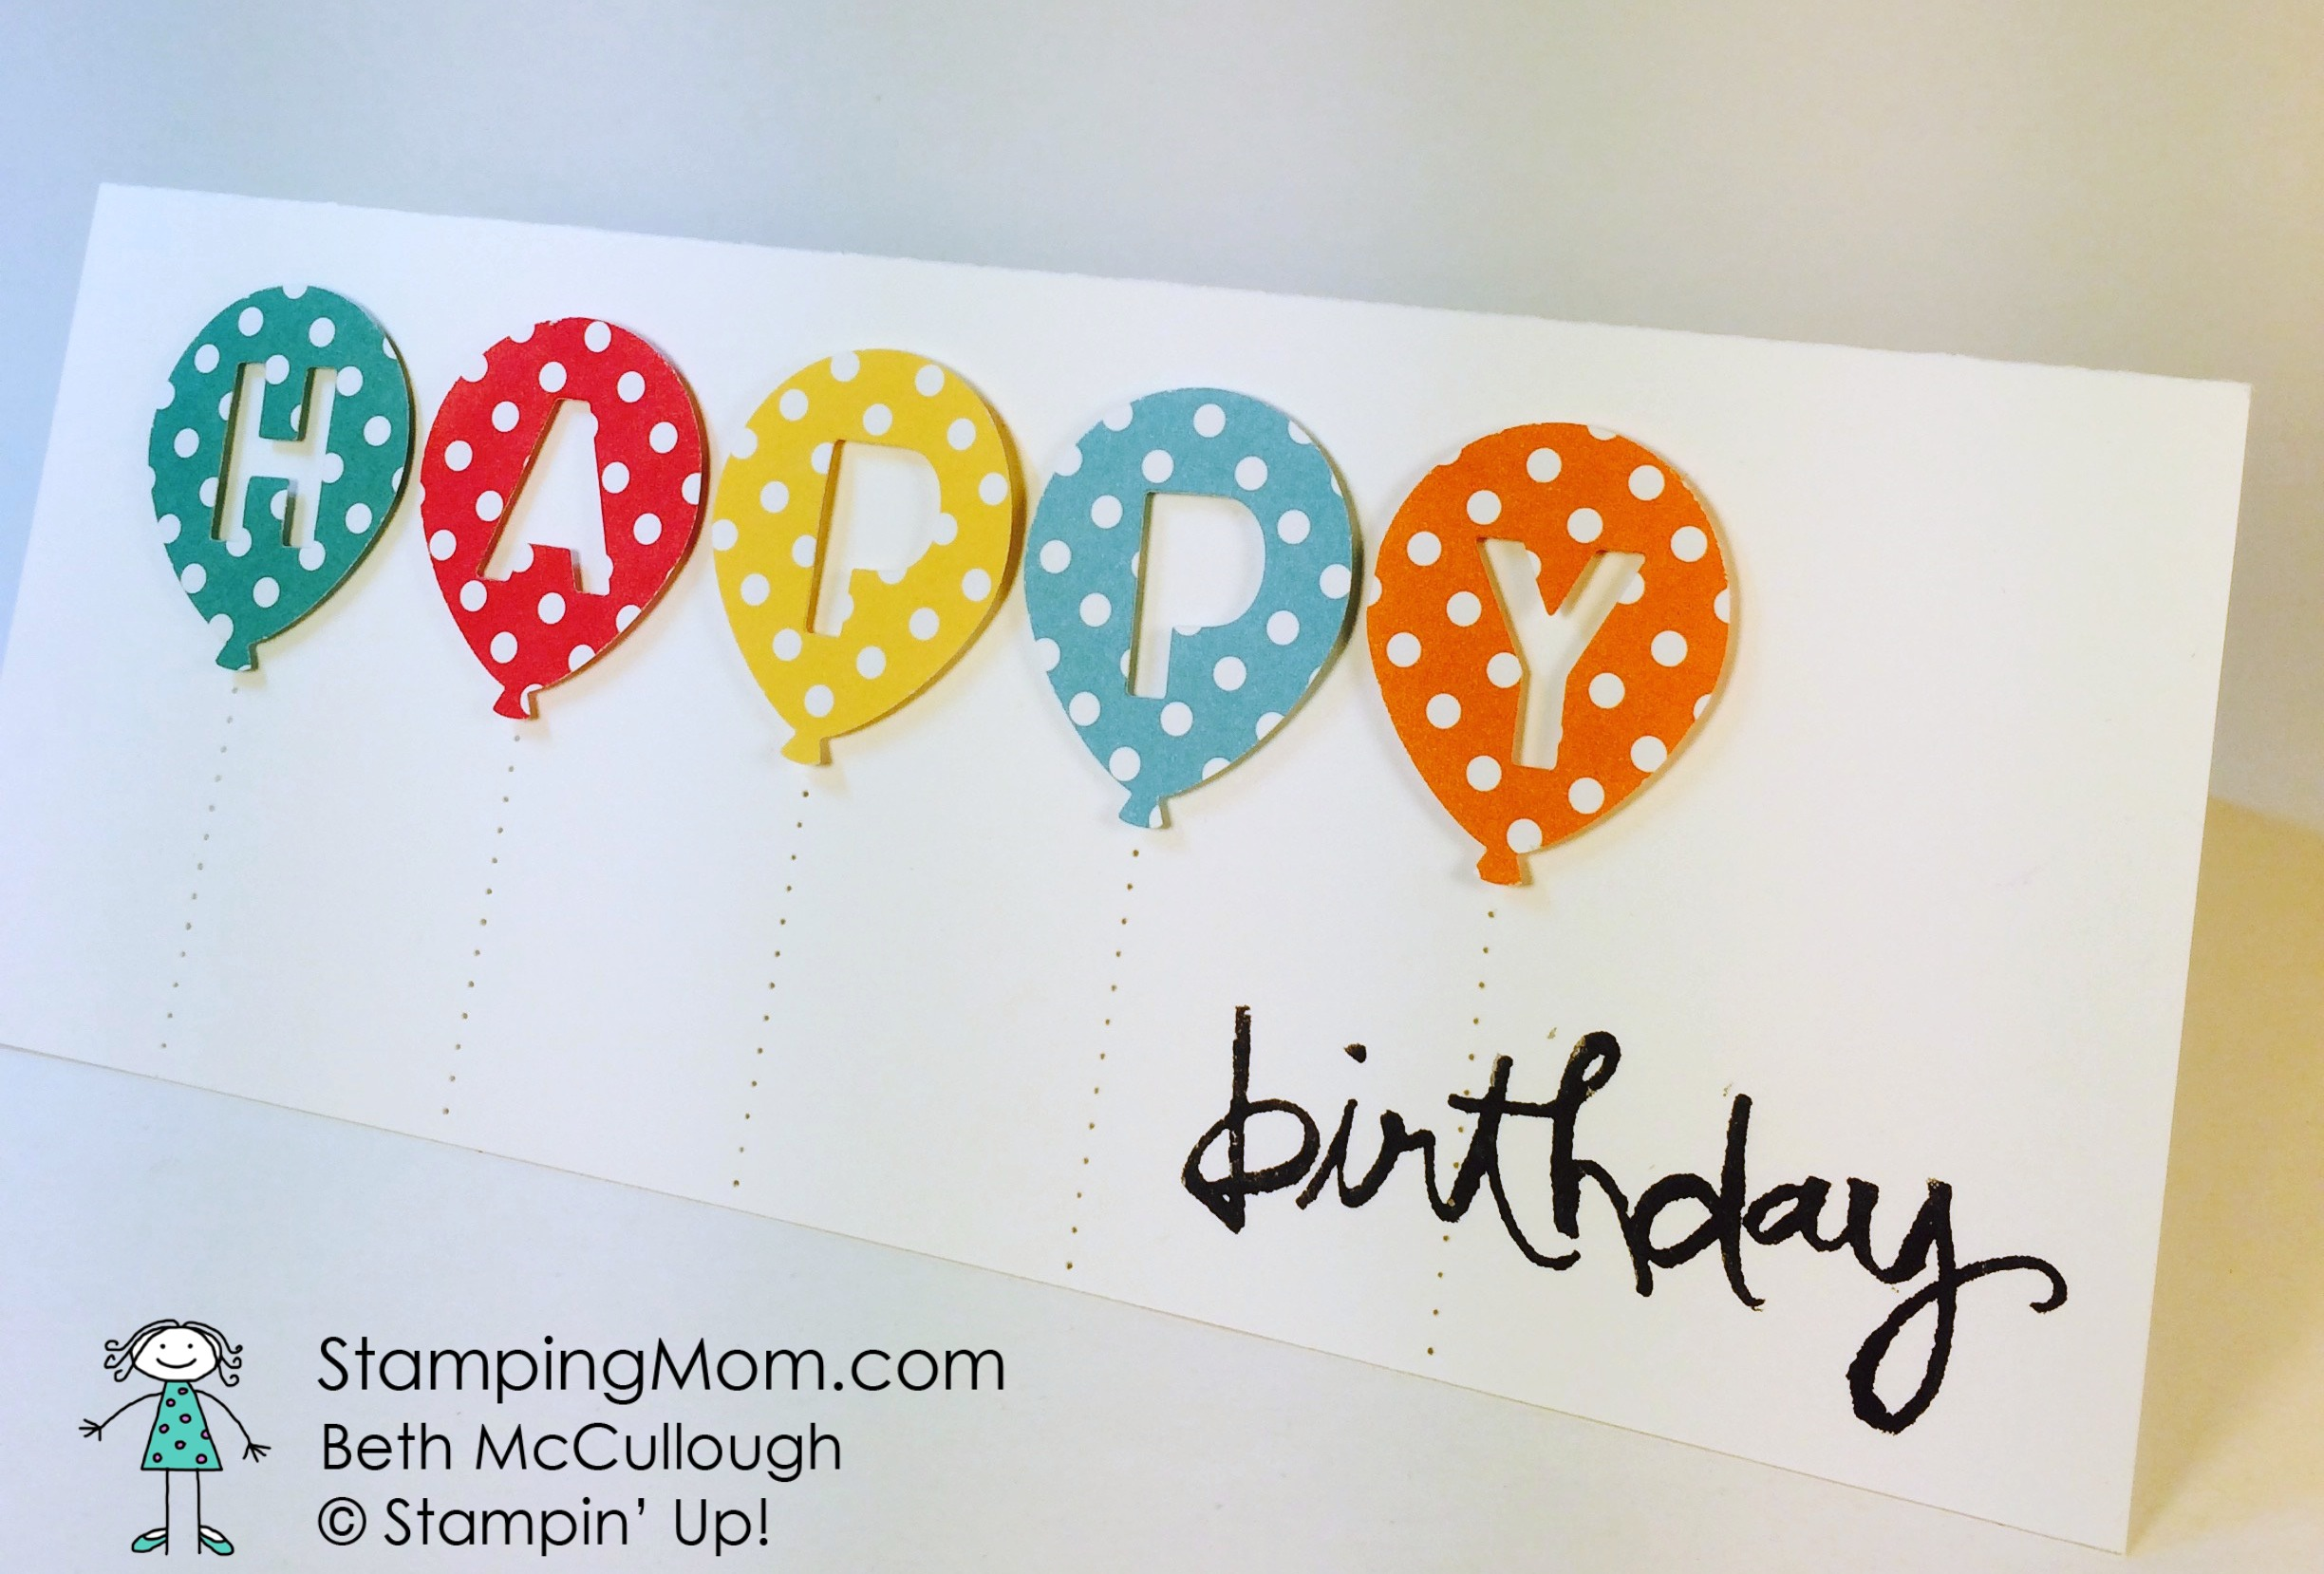 Happy Birthday Stamping Mom – Happy Early Birthday Card